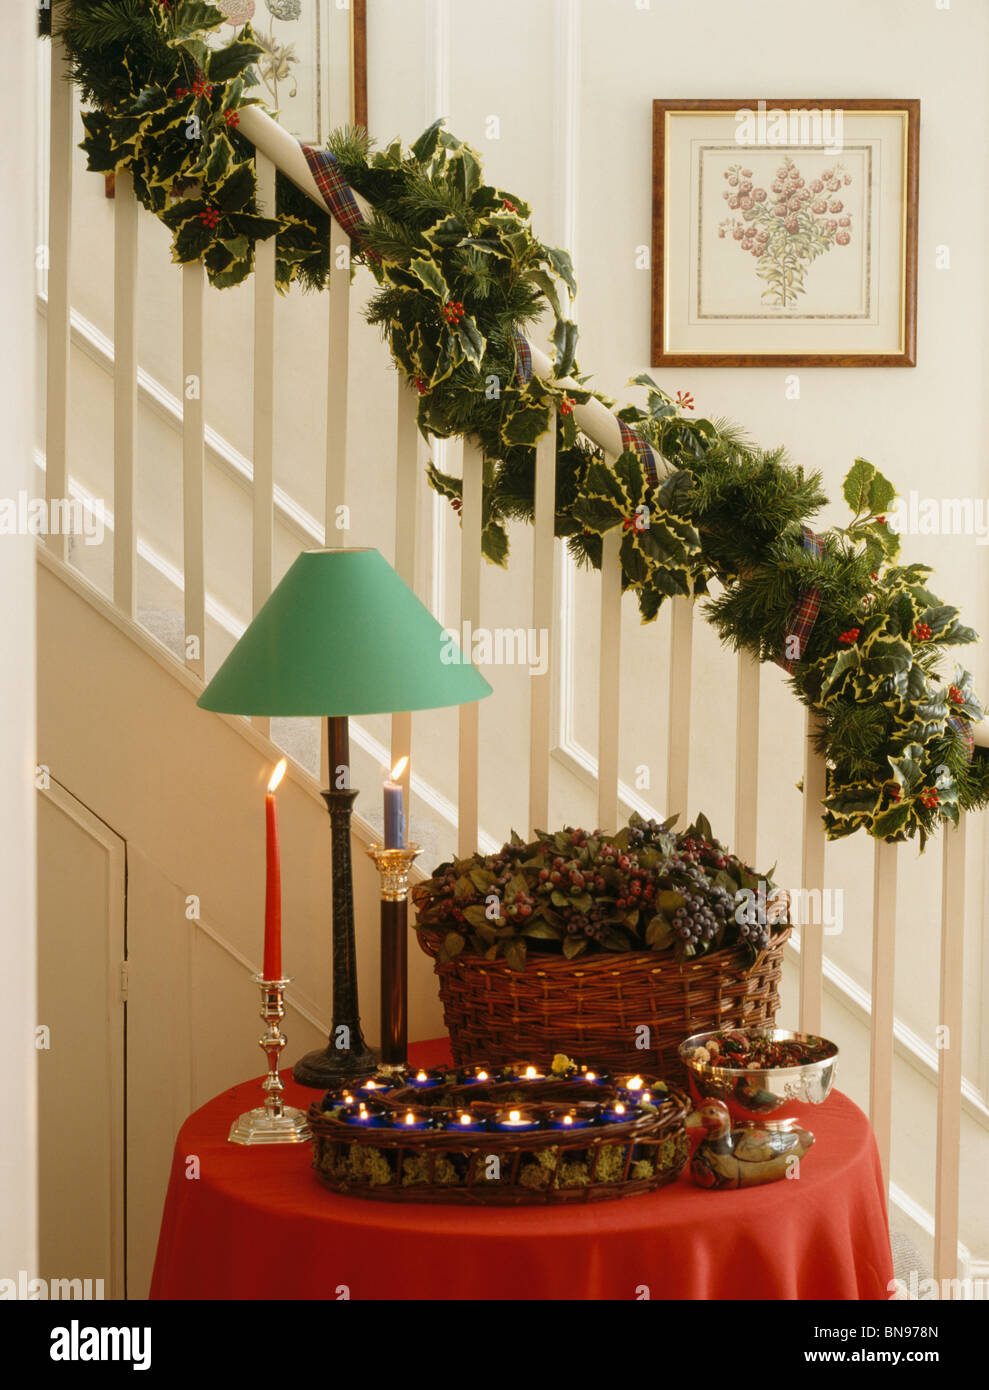 Hall With Christmas Garland On Staircase Above Green Lamp